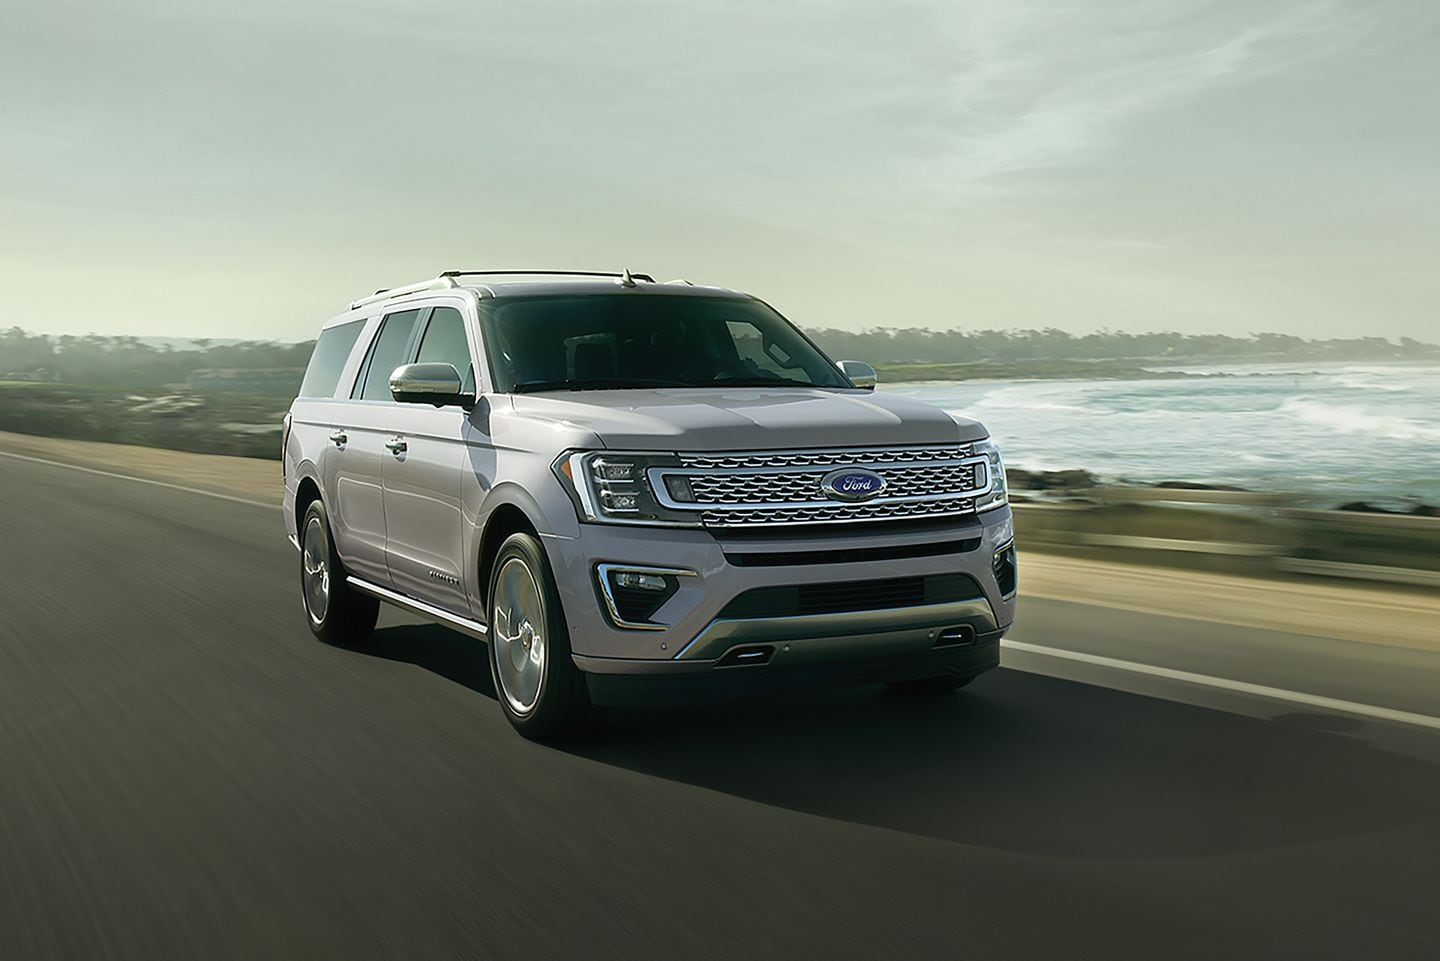 2019 Ford Expedition Elkhart, IN